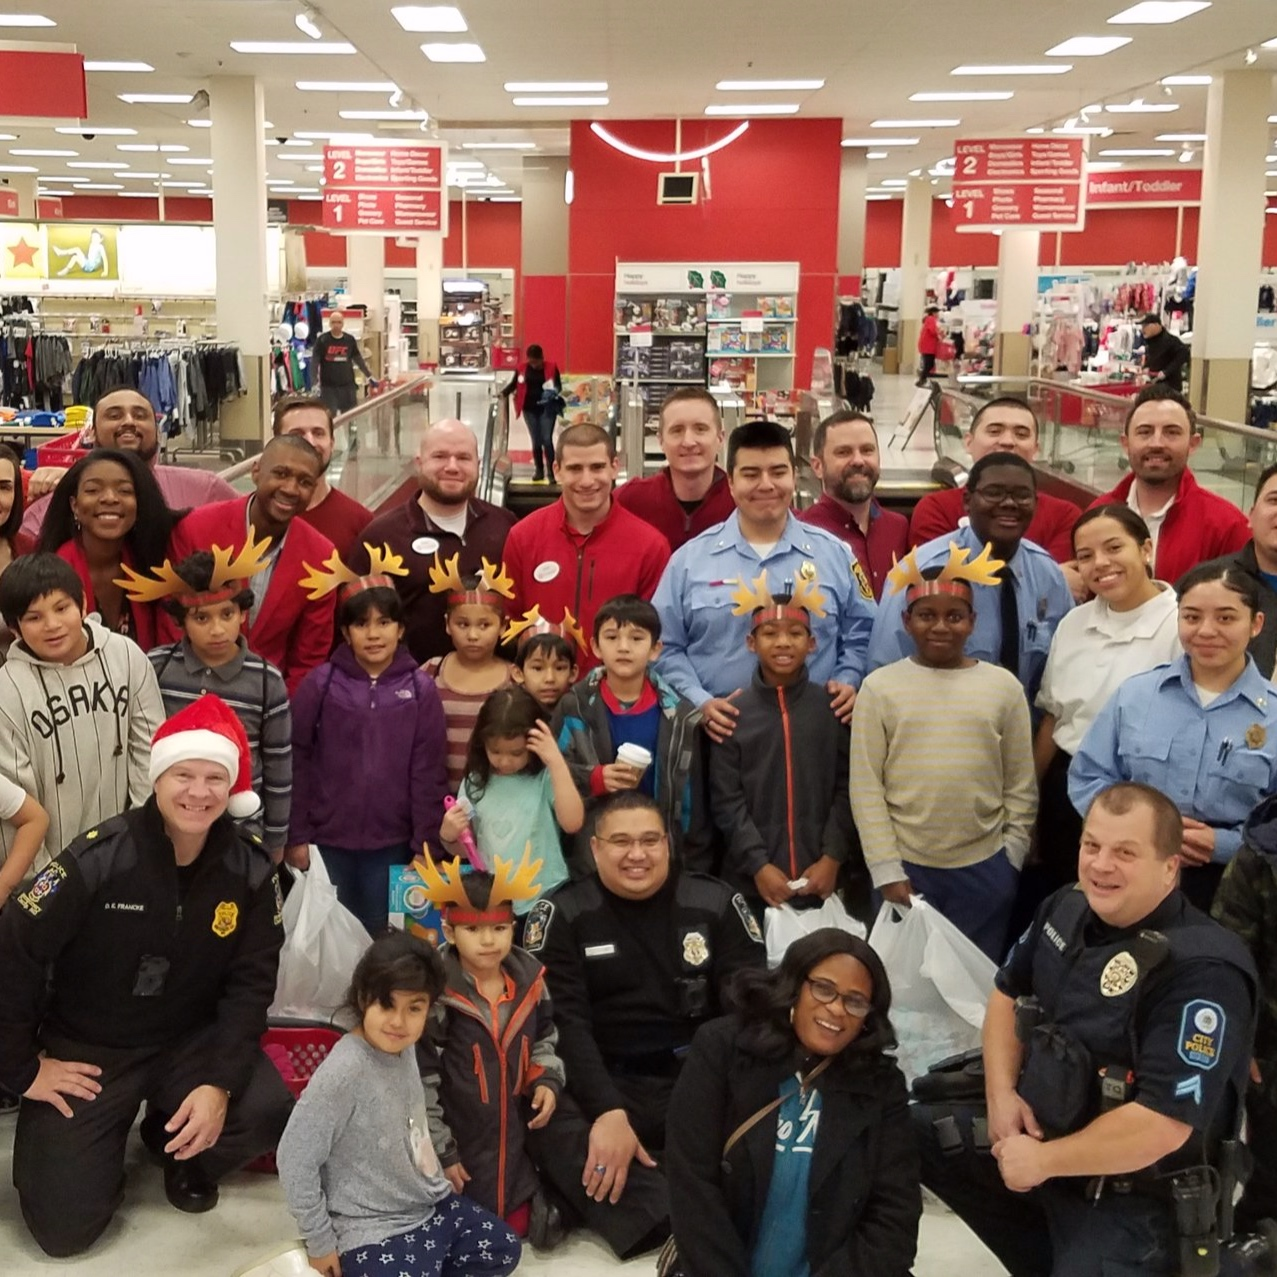 Annual Heroes and Helpers Event at the Rockville Target - Dec. 13, 2018